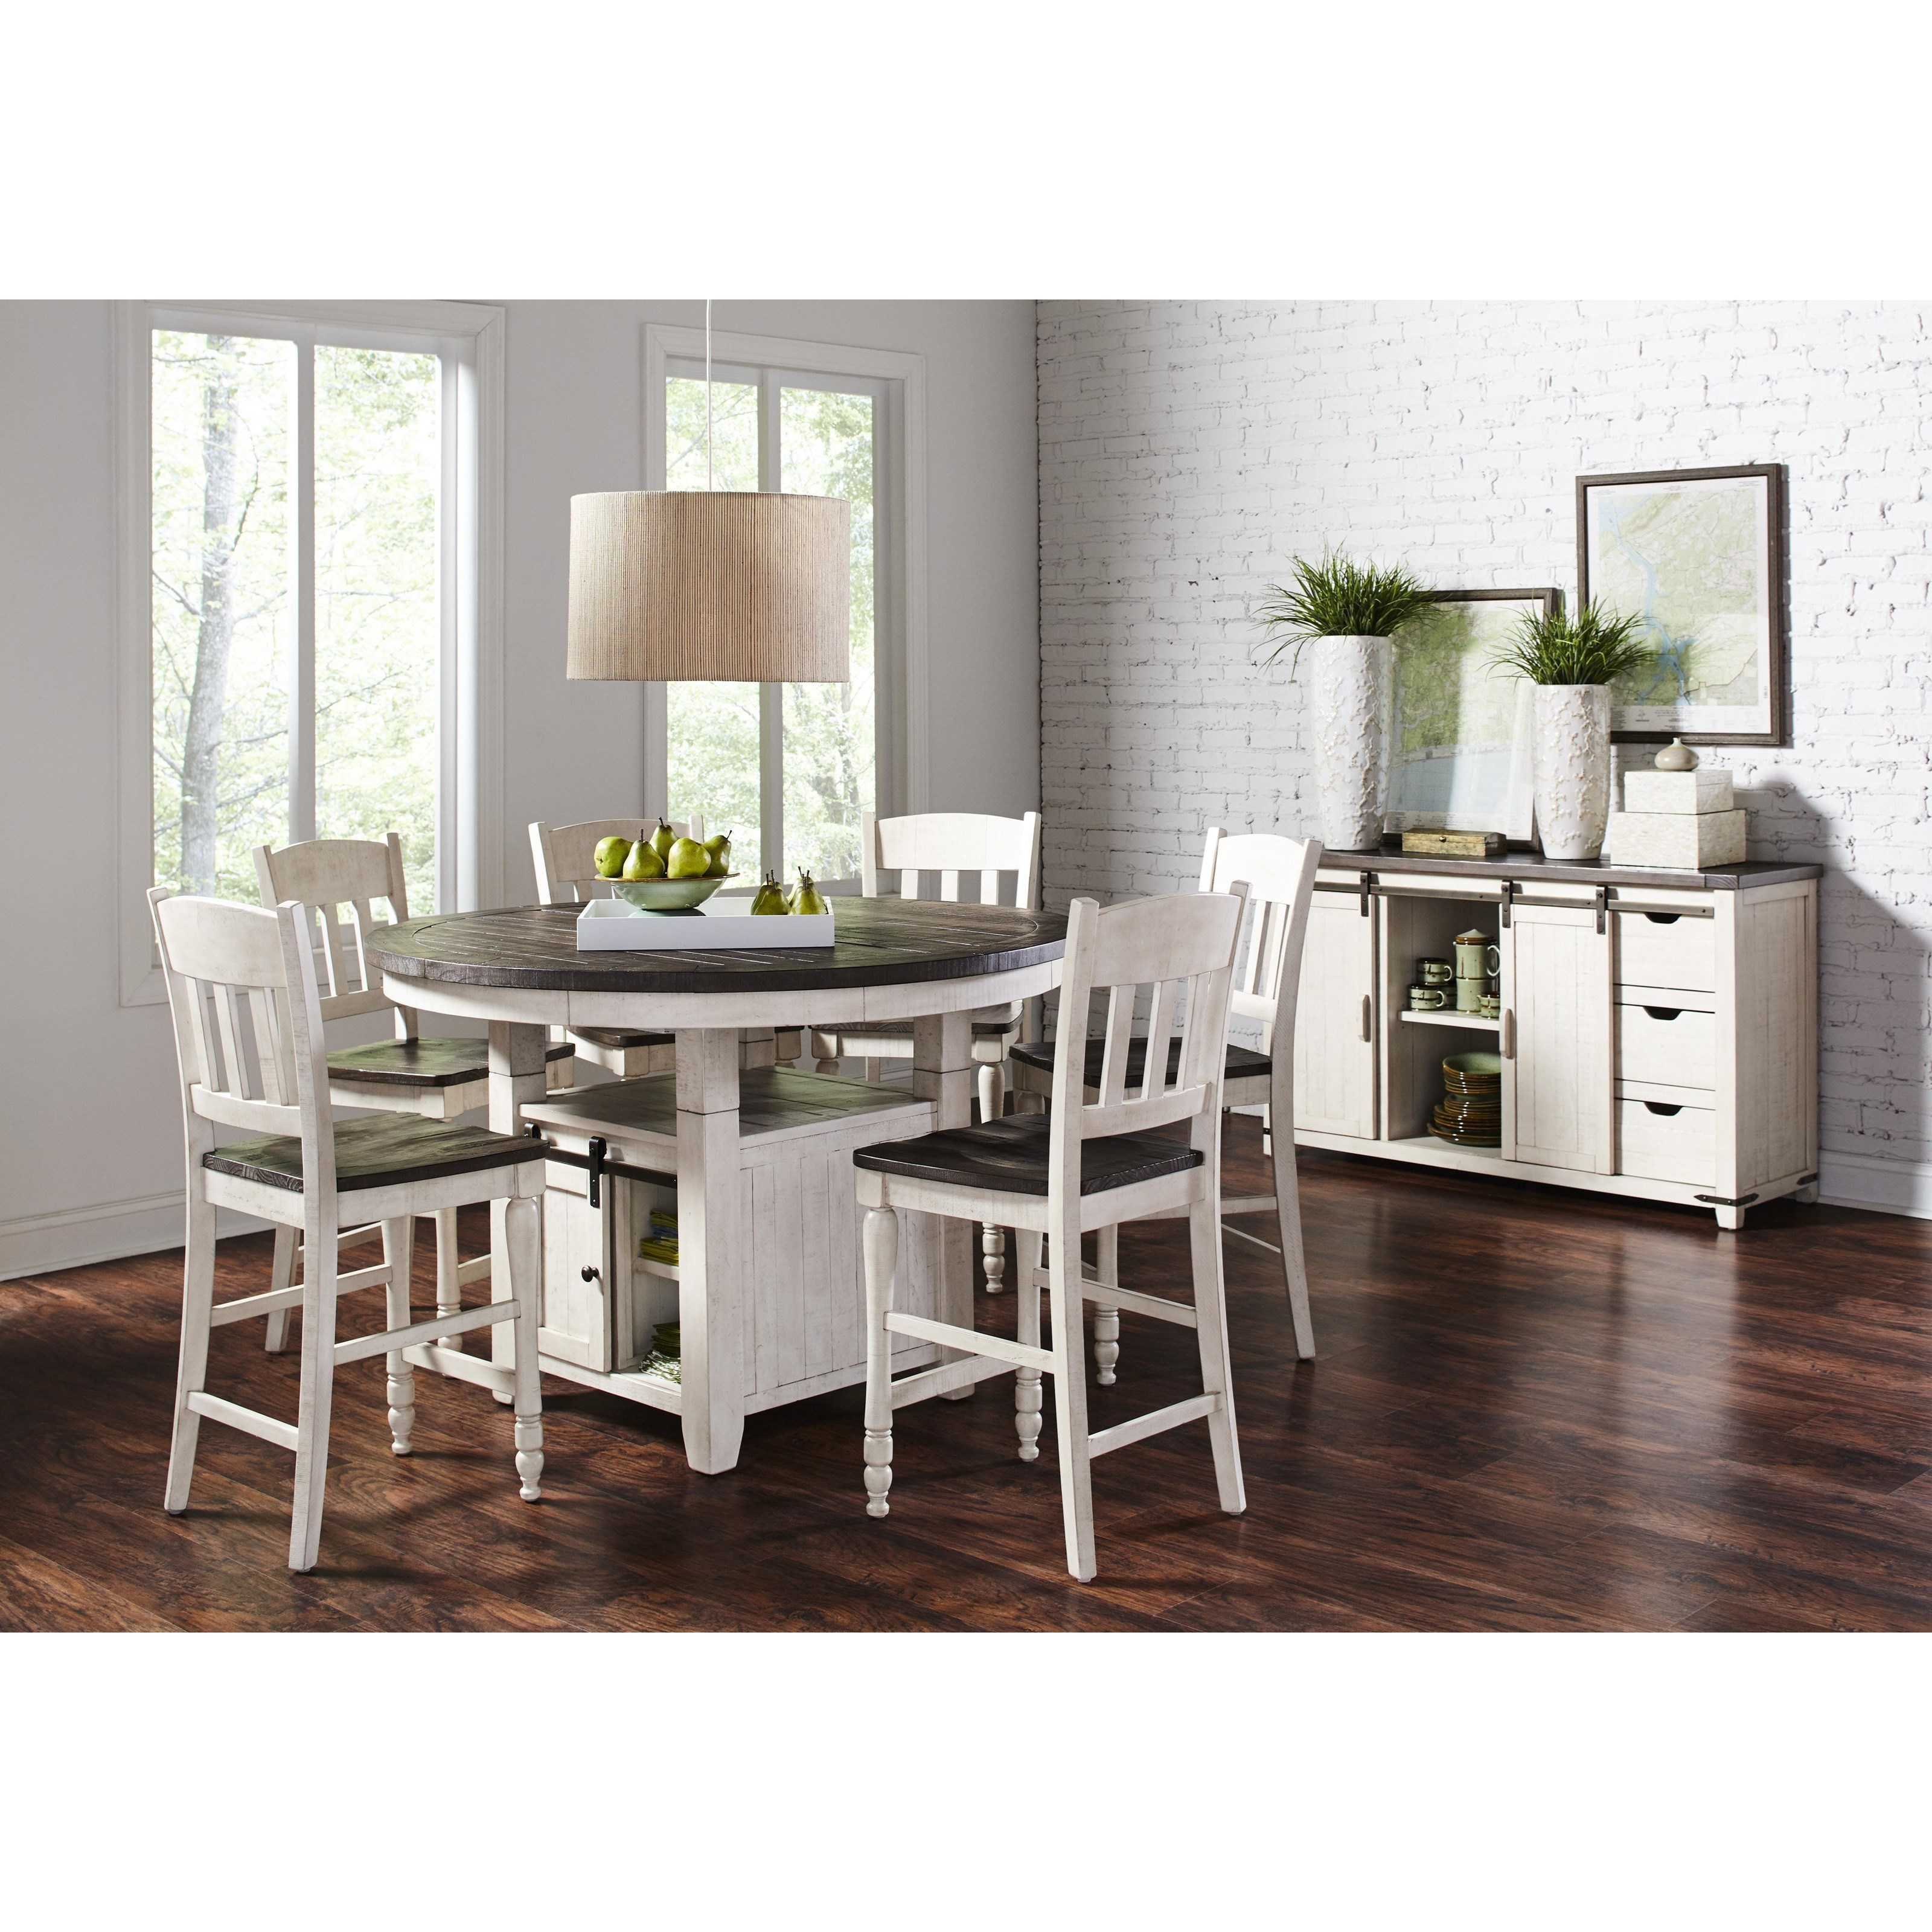 low dining room table | Jofran Madison County High/Low Round Dining Table | H.L ...